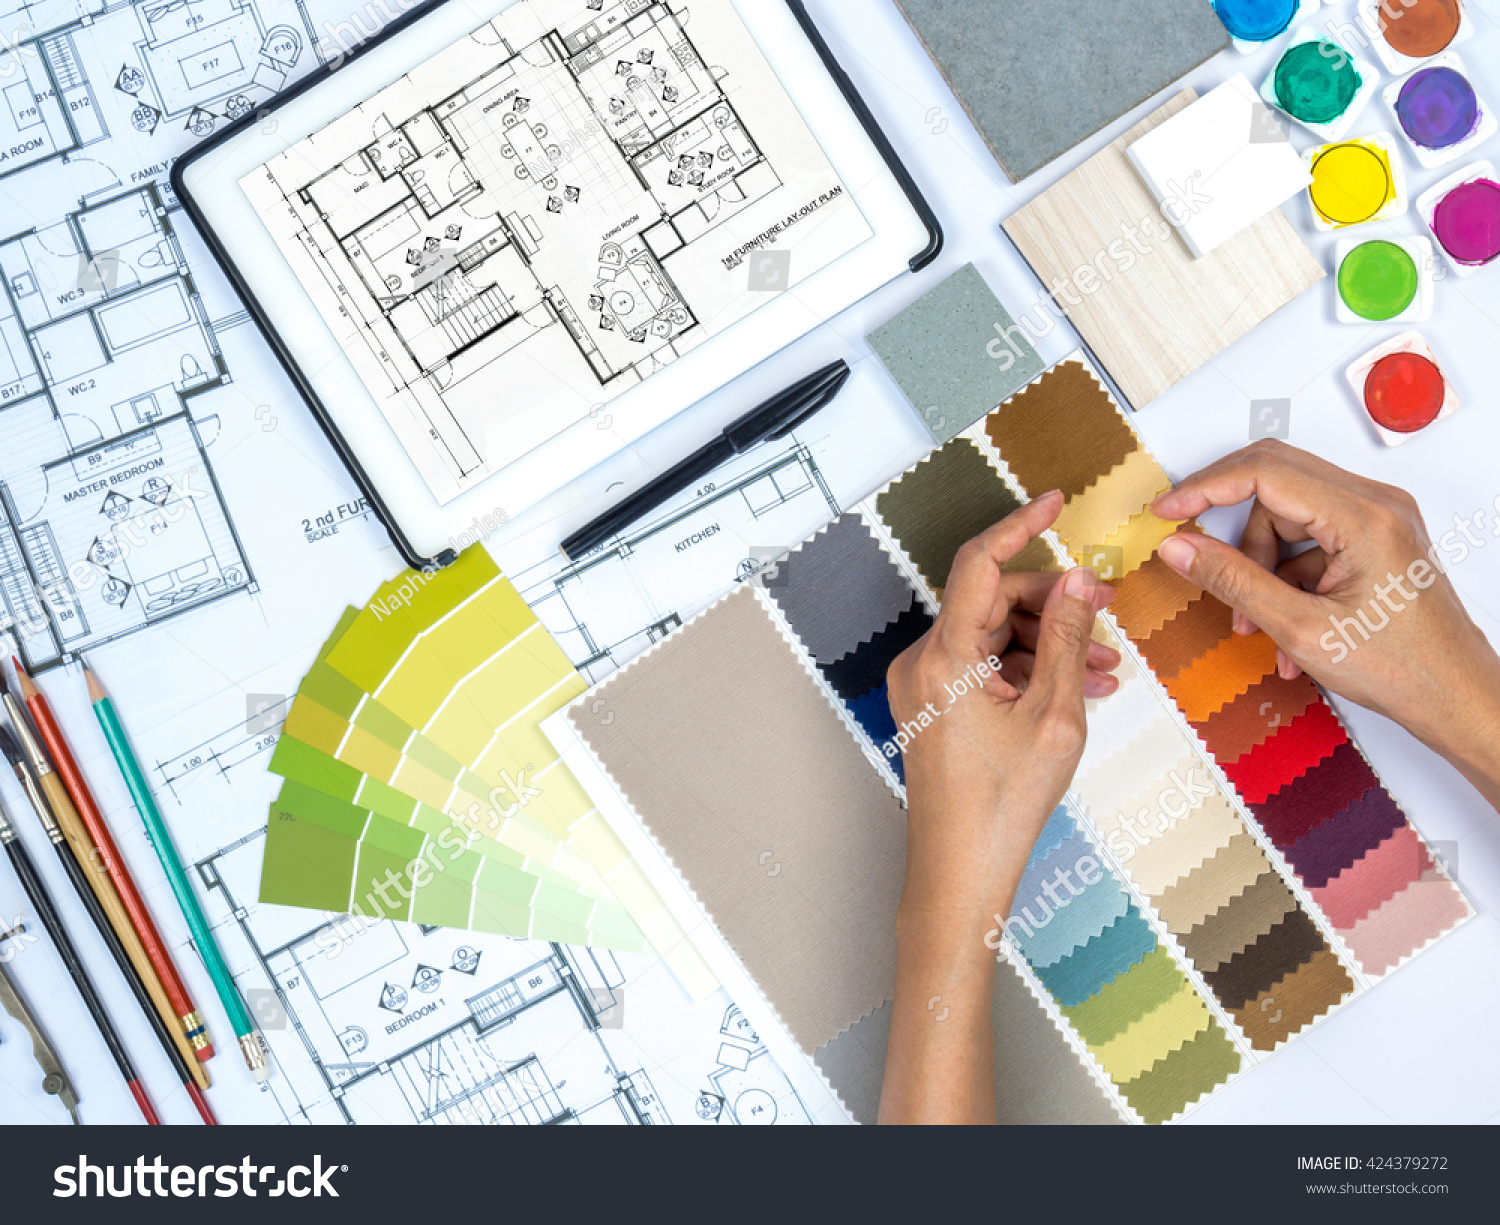 Interior designer working images galleries with a bite How many hours do interior designers work